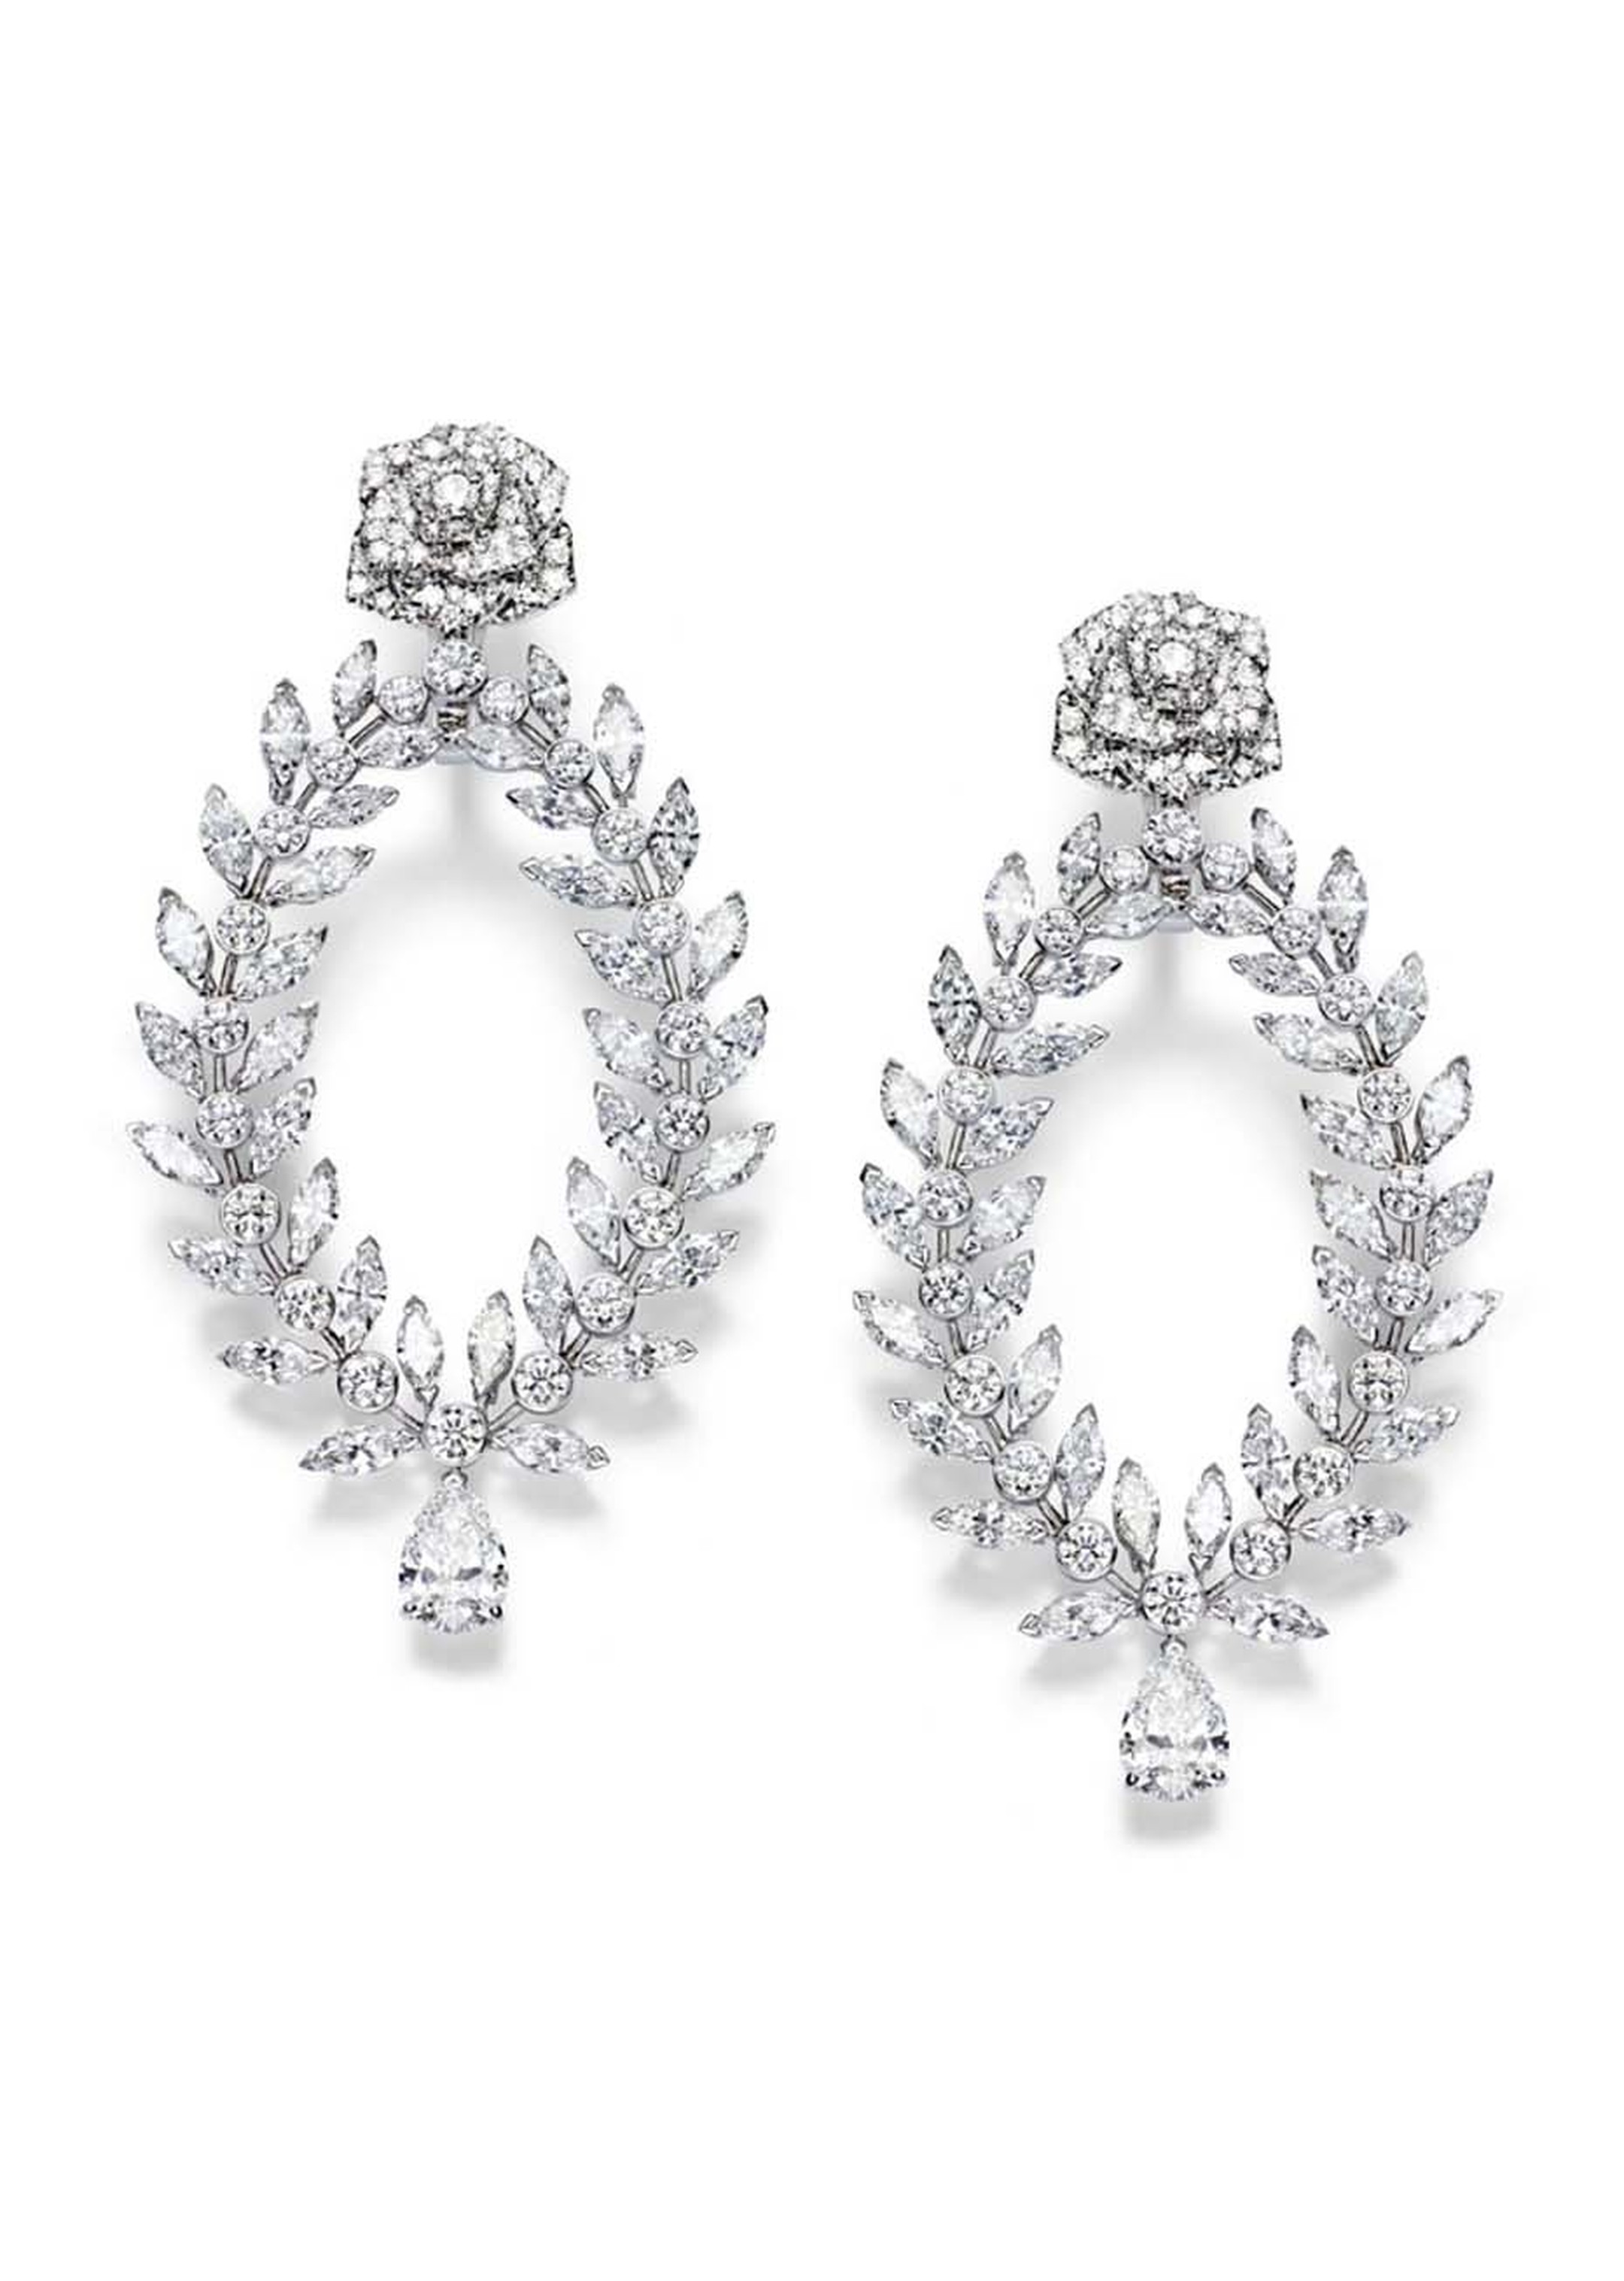 Piaget Rose diamond earrings also feature a stud in the shape of an exquisitely detailed rose.